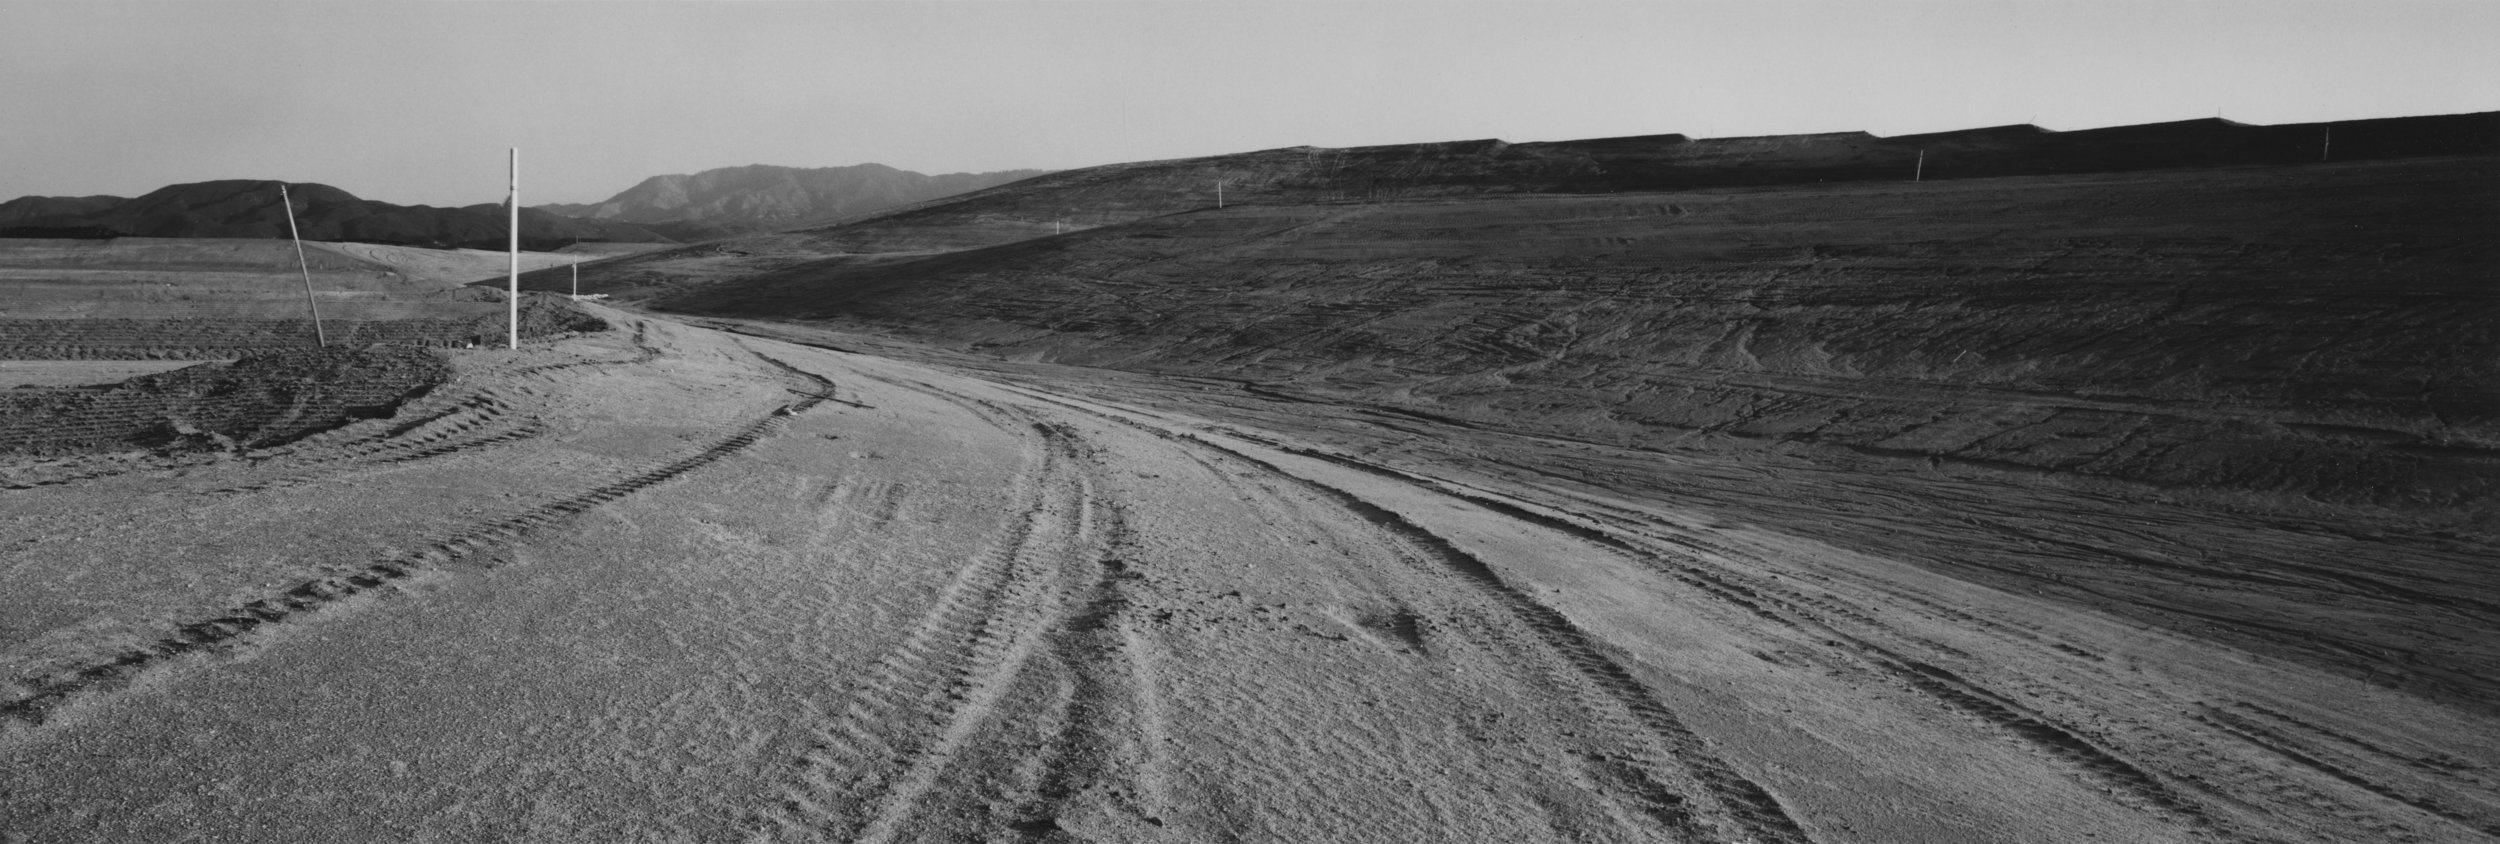 Laurie Brown, Recent Terrains #8, 1991, Gelatin silver print, 34 x 49 inches, Courtesy of the artist.